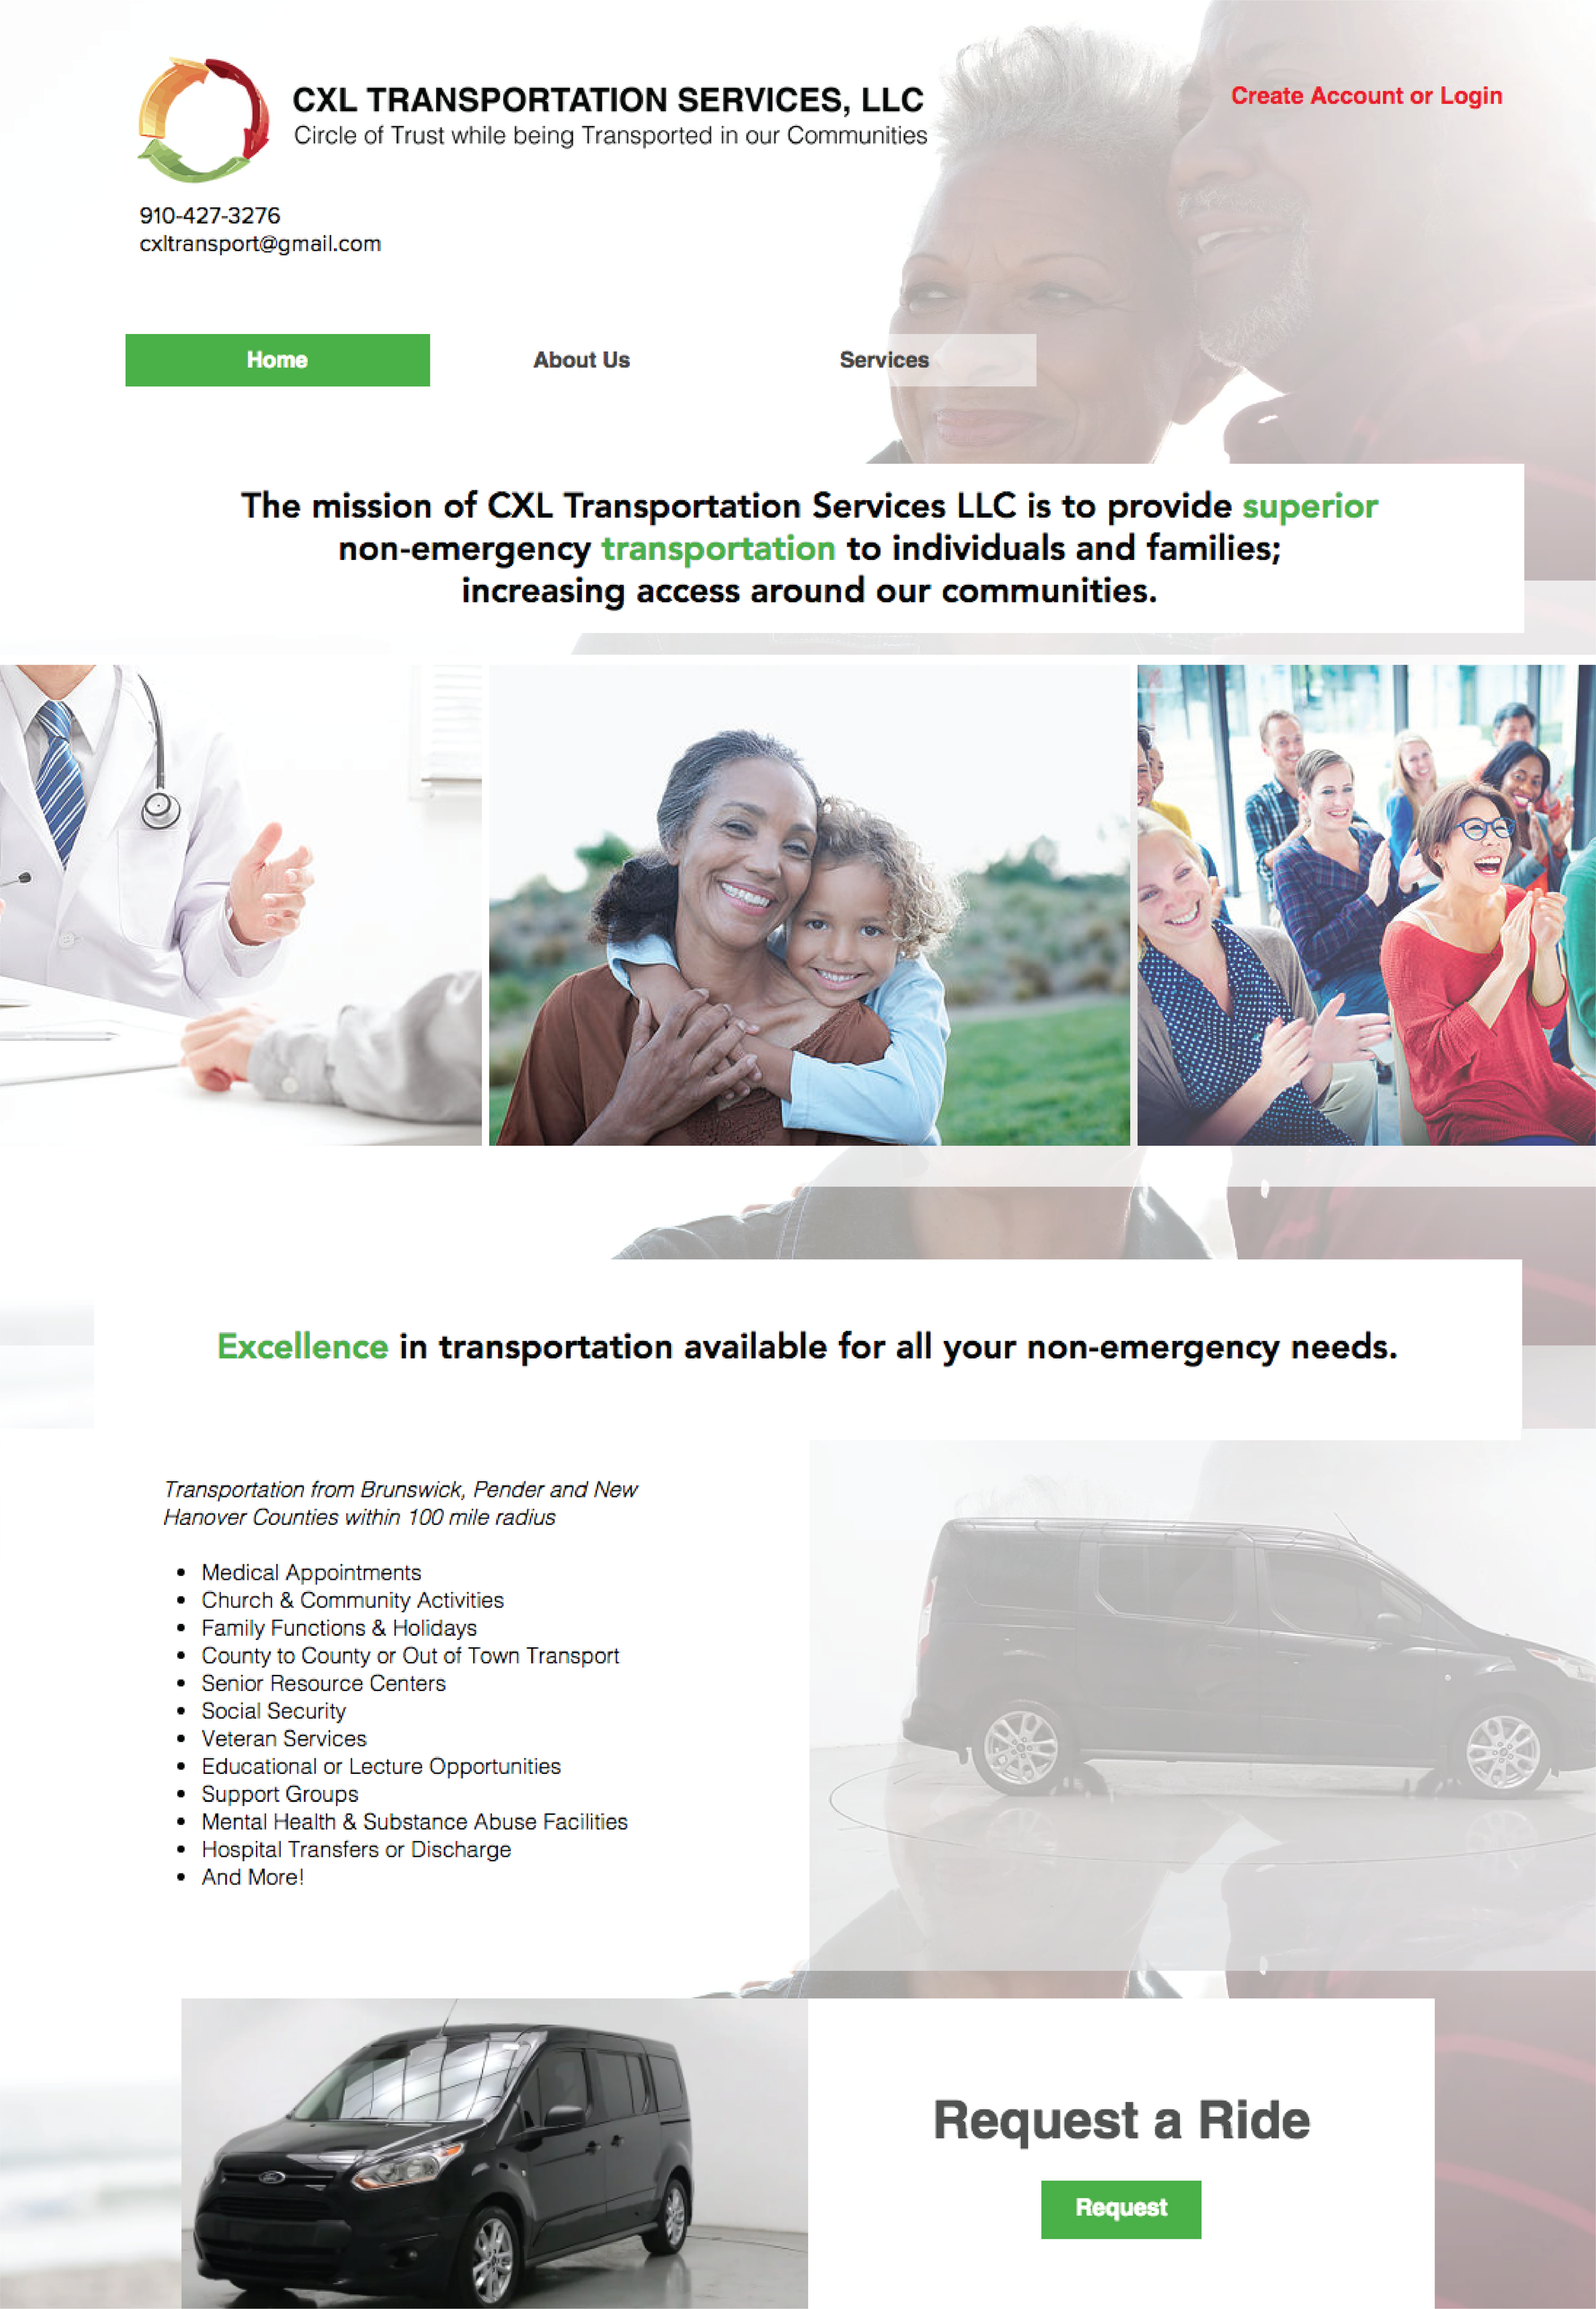 Website Creation - Company: CXL Transportation Services, LLCFeatures: Member login, scrolling image carousel, mobile friendly site, ride booking capabilitiesLink to Site: www.CXLTransport.com